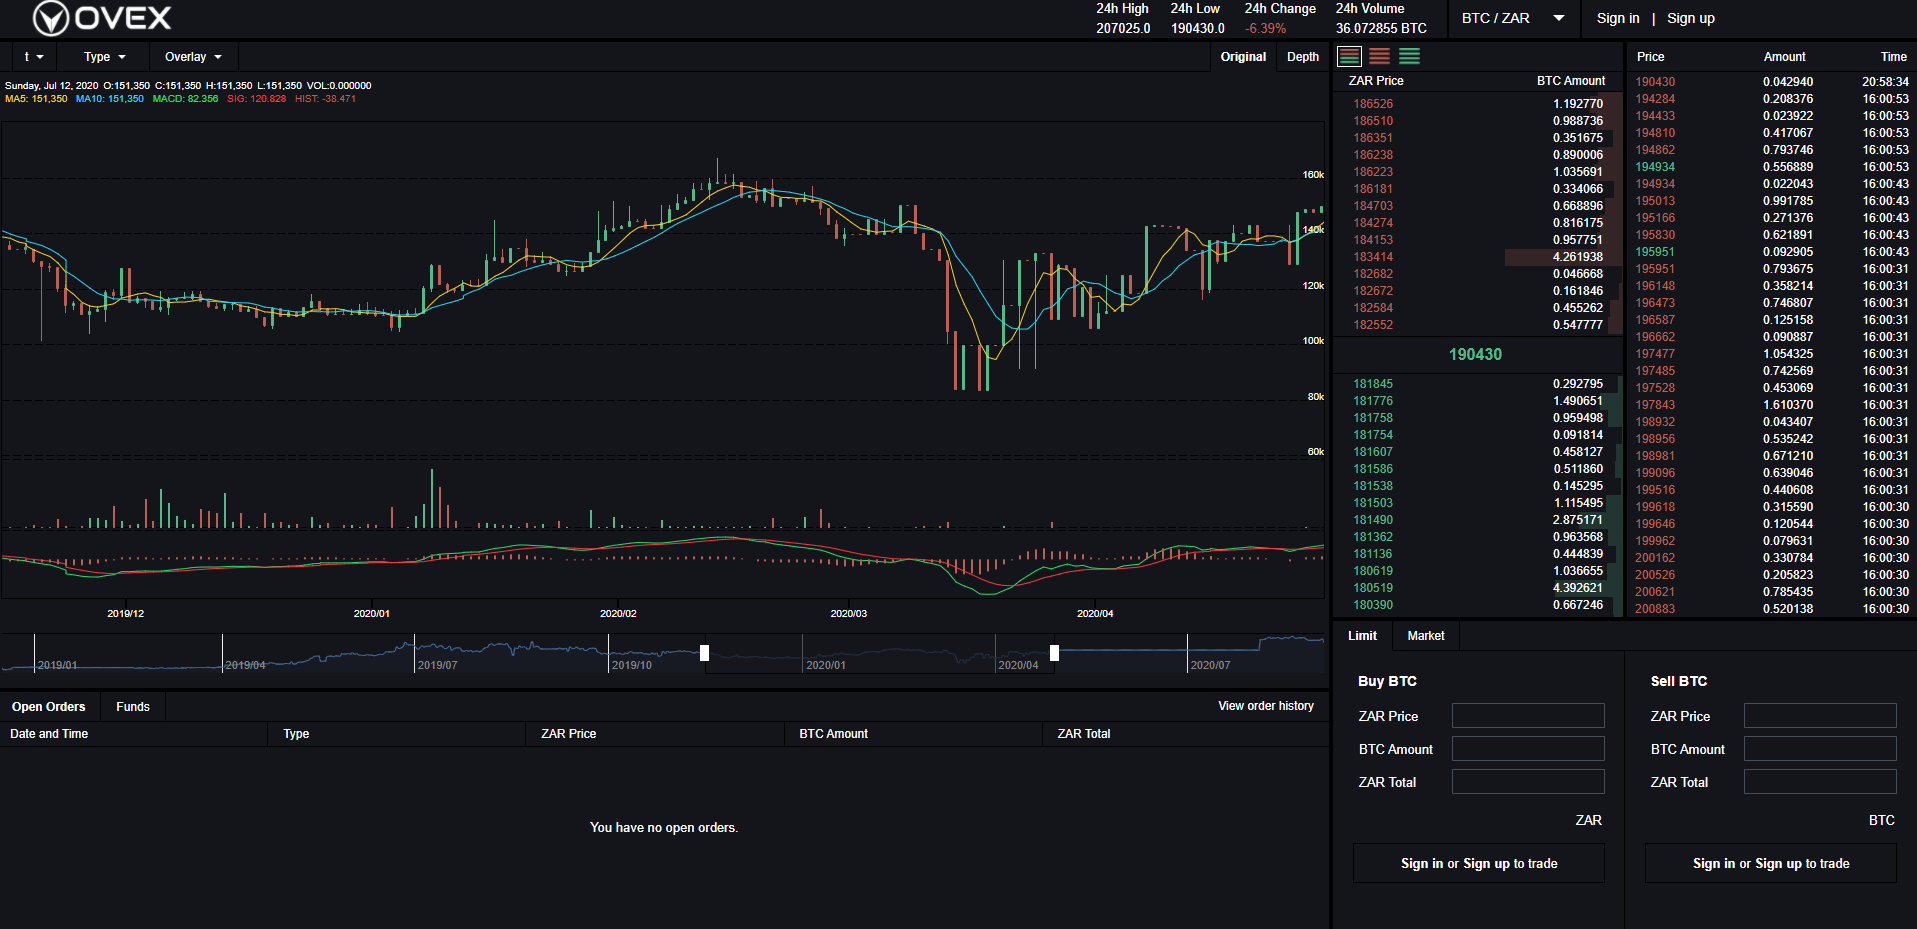 OVEX Trading View